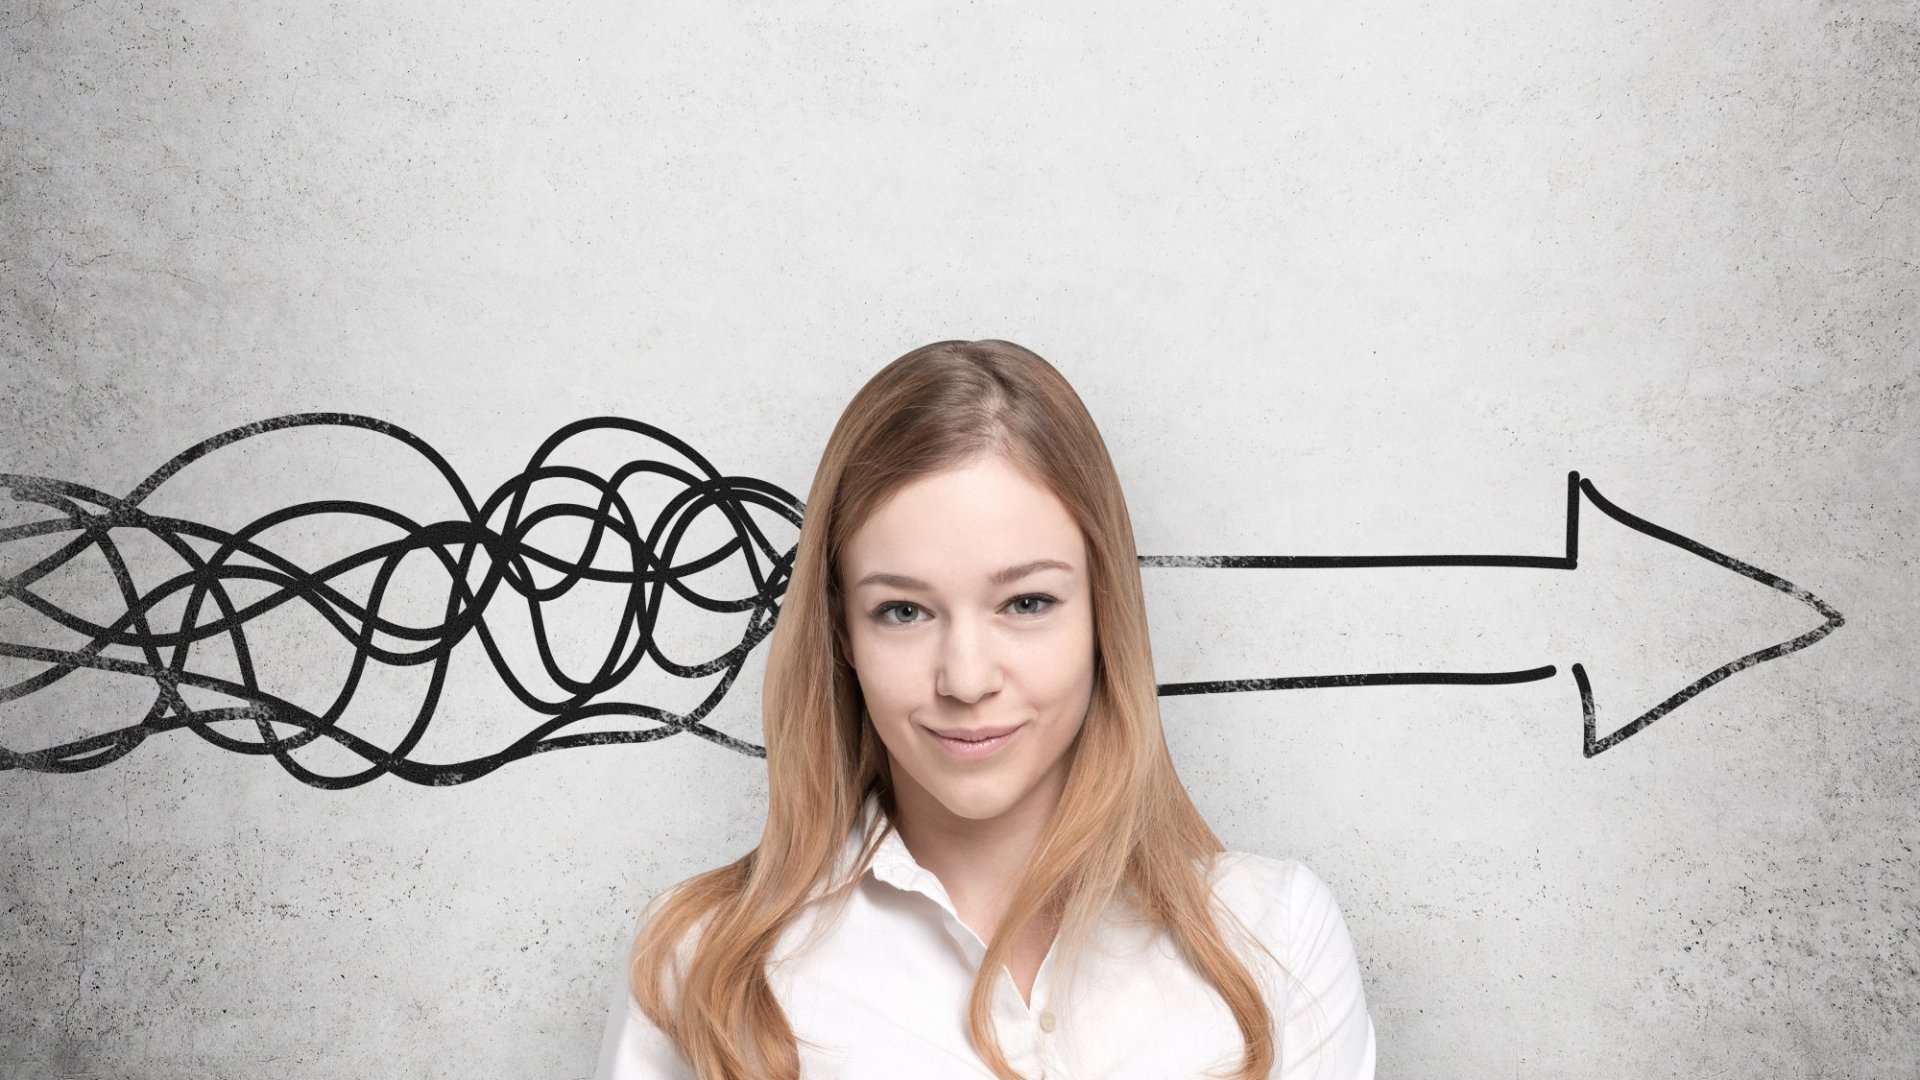 3 Tools to Improve Your Mindset and Streamline Your Business